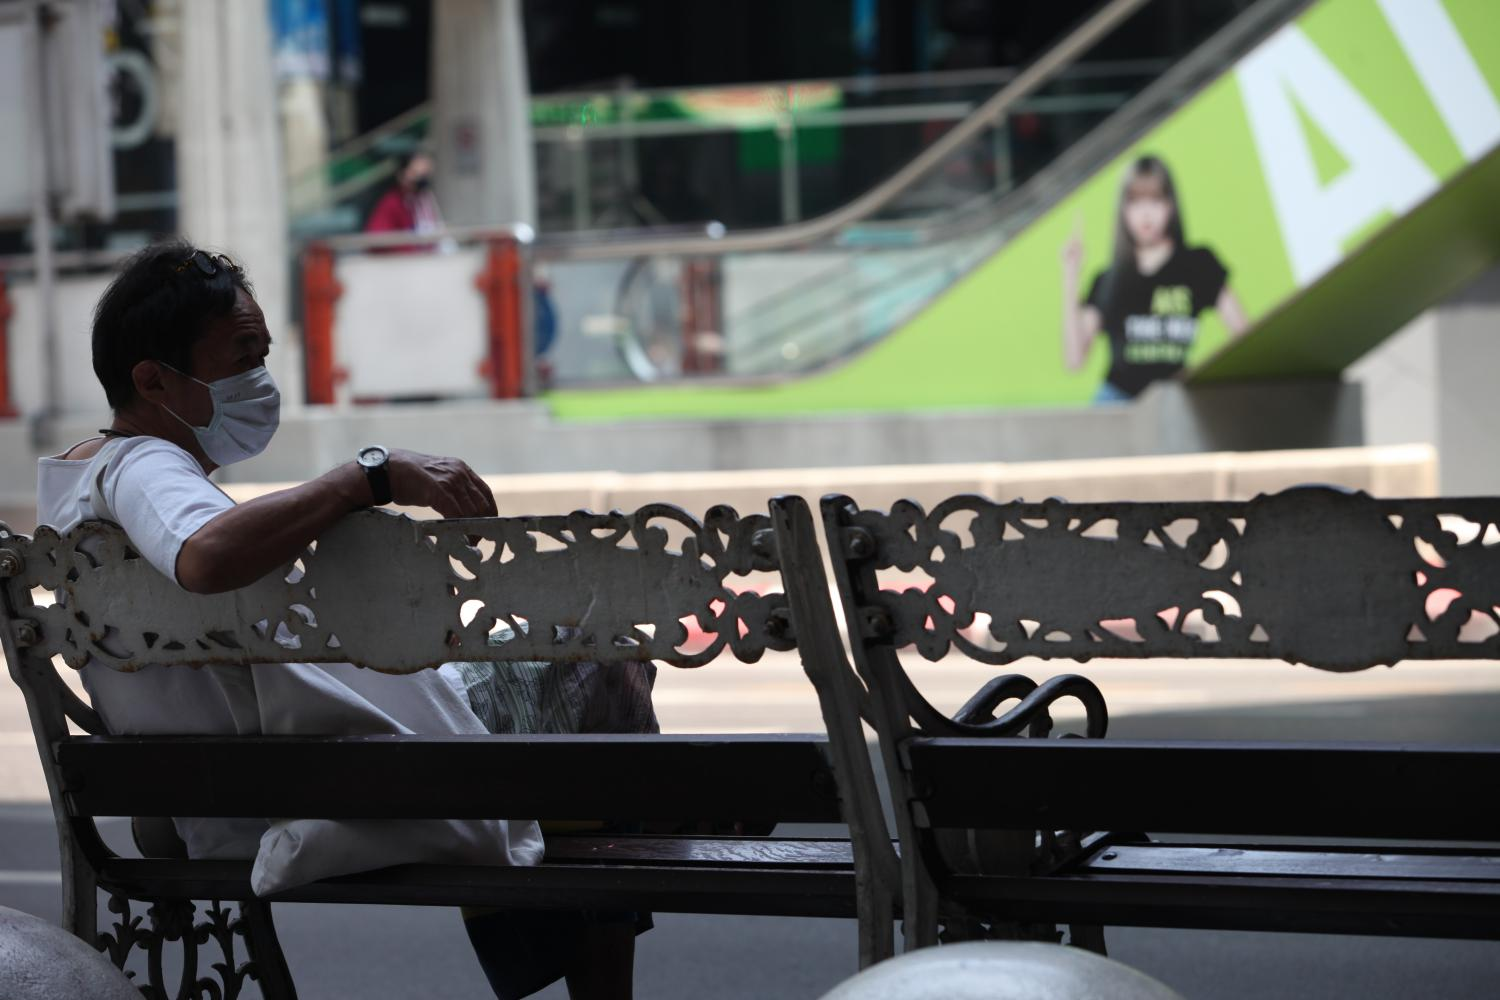 NOTHING TO SEE HERE: A man sits alone on a bench in Siam Square, a popular shopping district in Bangkok which has become almost empty since lockdown measures were ramped up to prevent the spread of Covid-19.